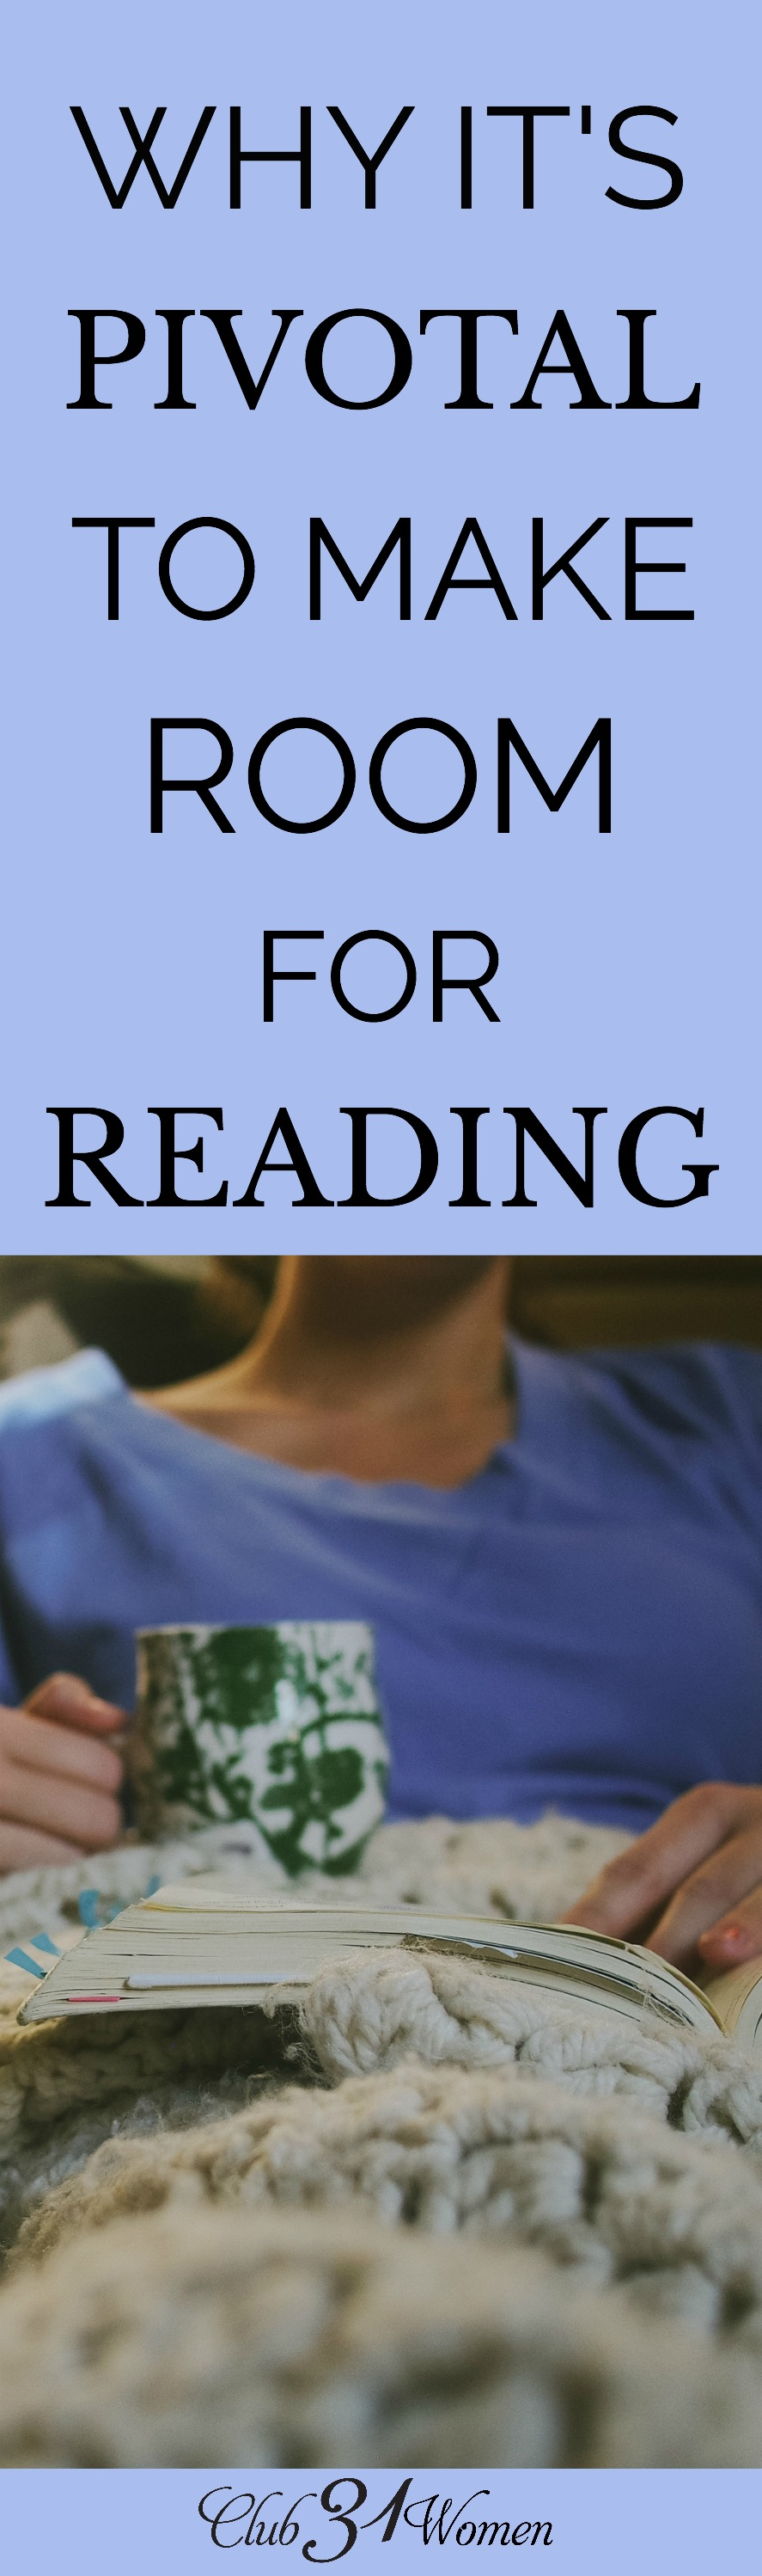 Do you make time to read? Here are some excellent reasons why we should make room for reading in our lives and what sort of books to pursue. via @Club31Women